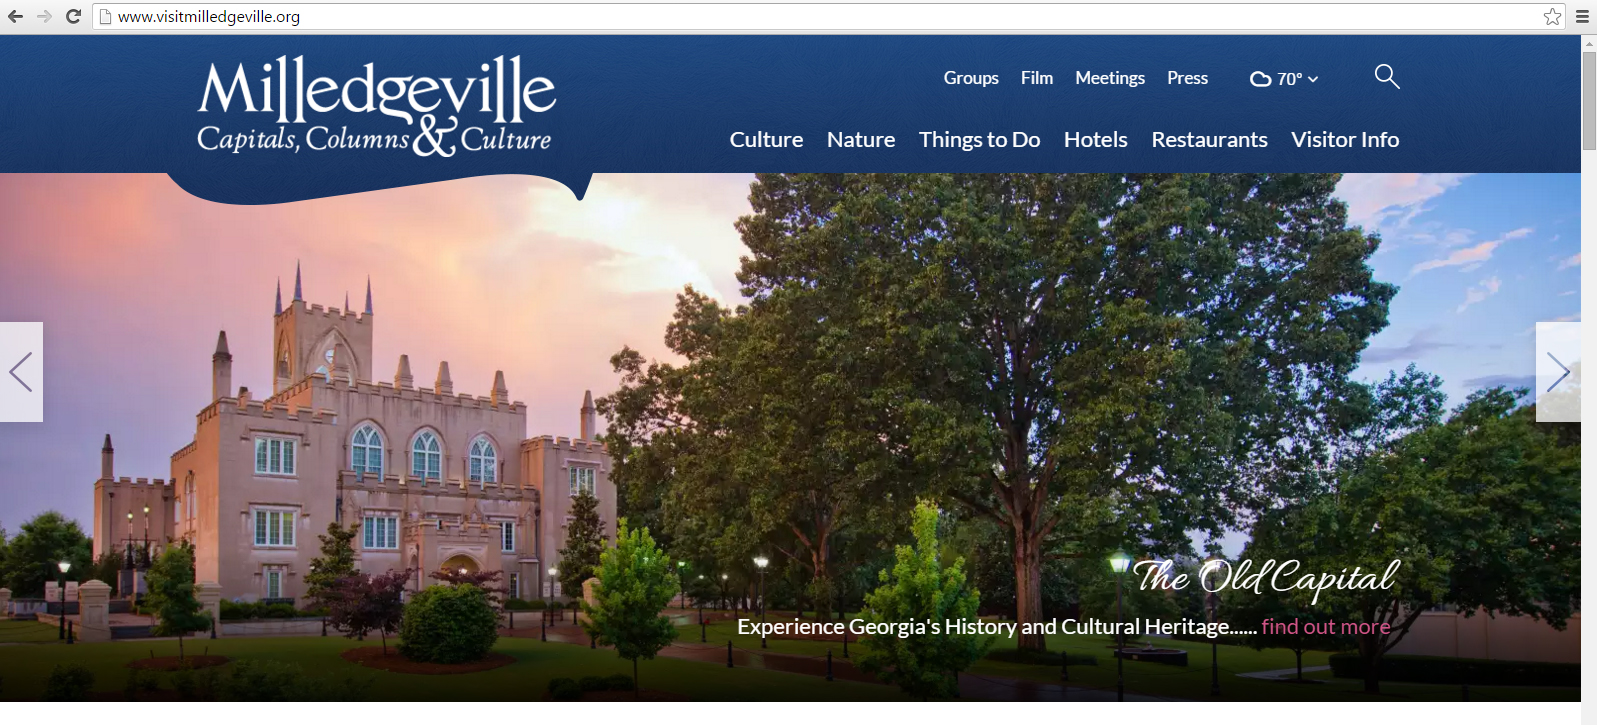 homepage of newly redesigned visitmilledgeville.com